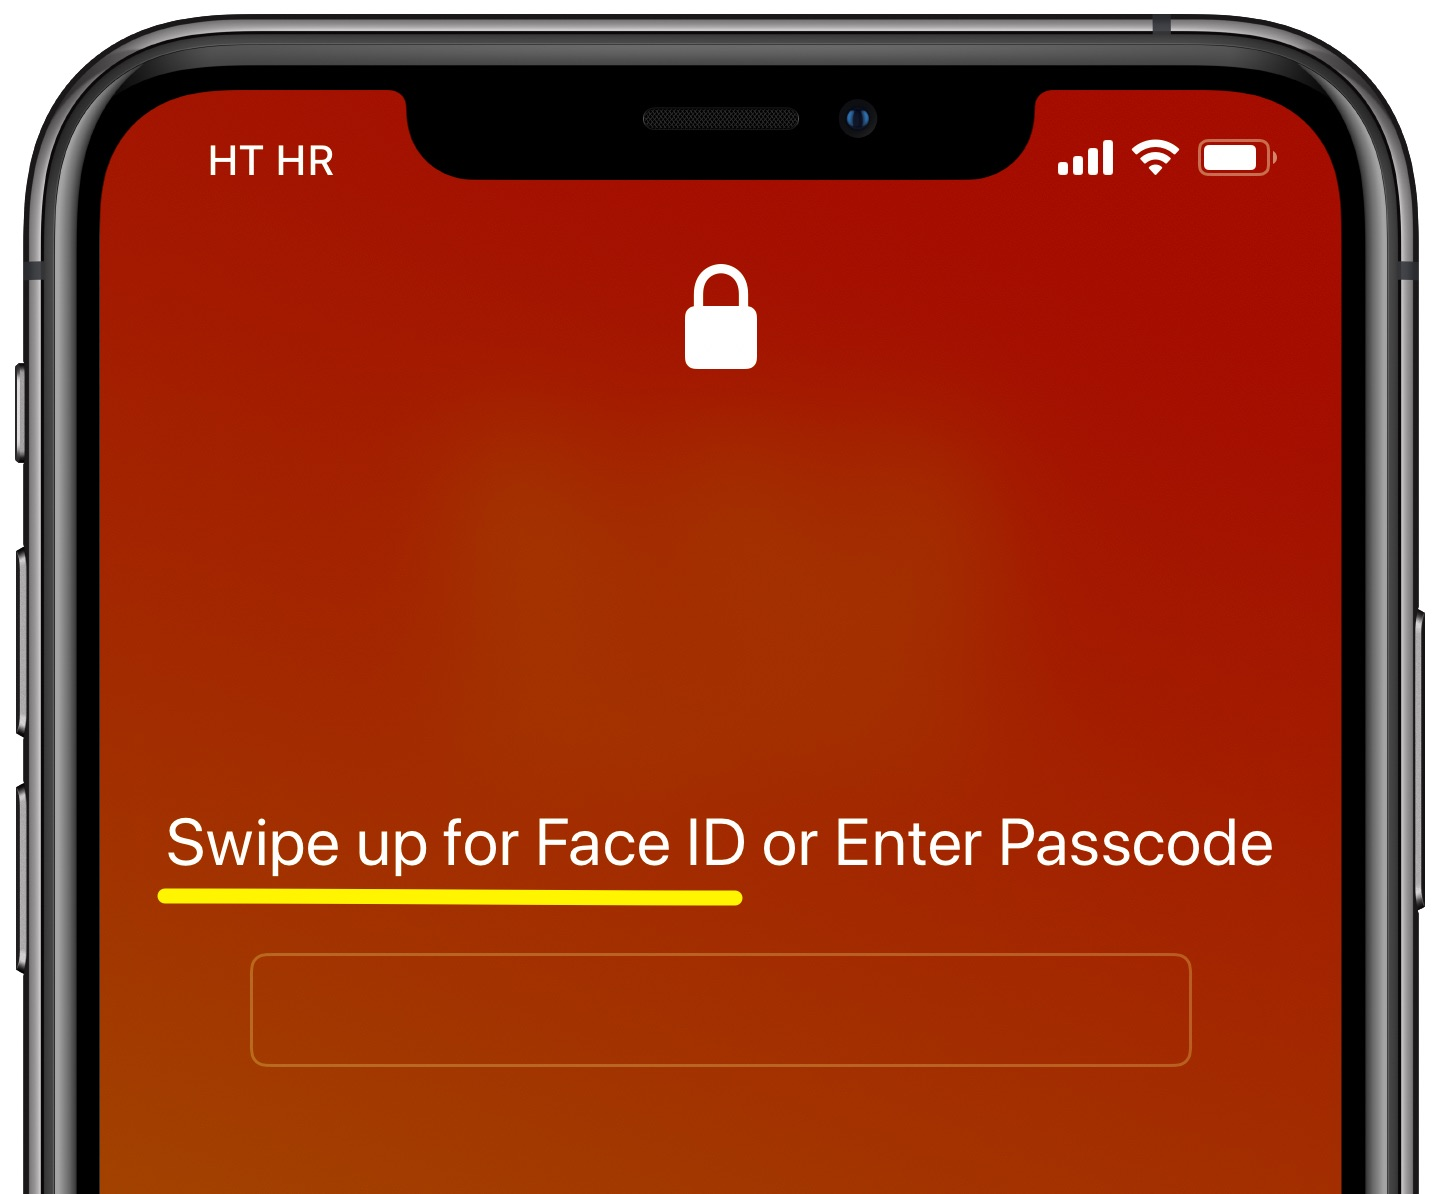 Swipe up for Face ID on passcode screen